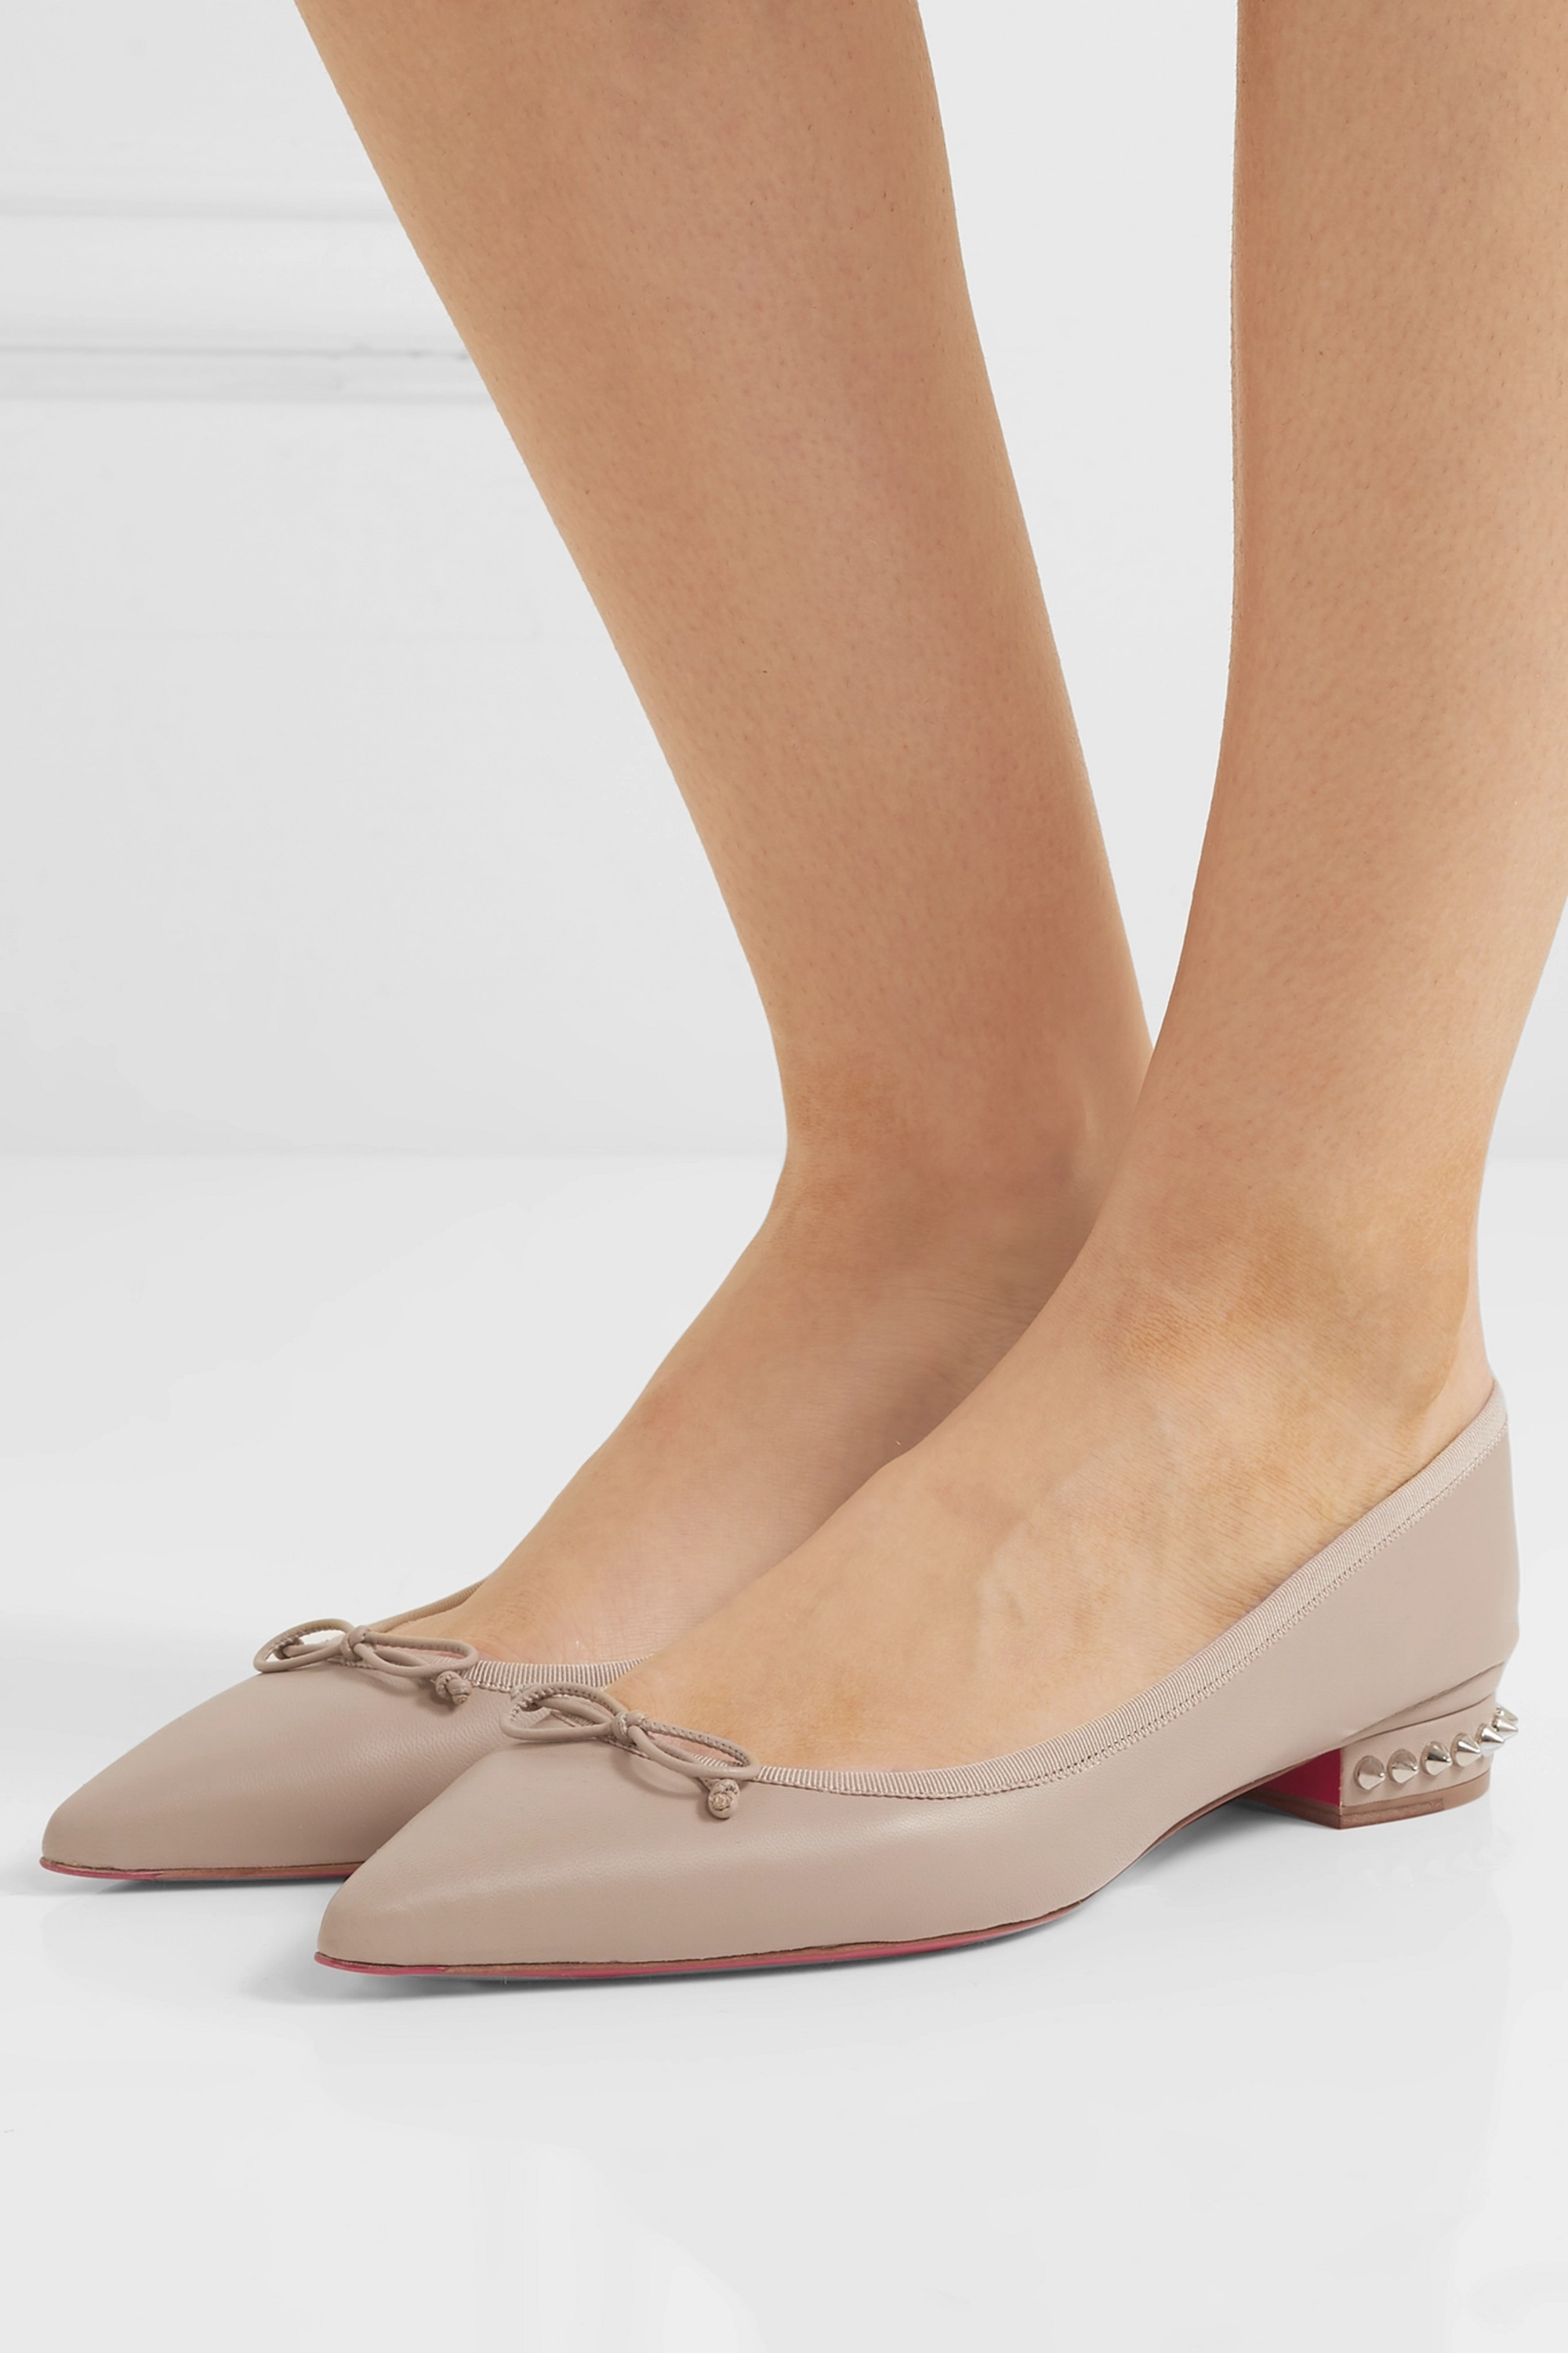 Hall spiked leather point-toe flats